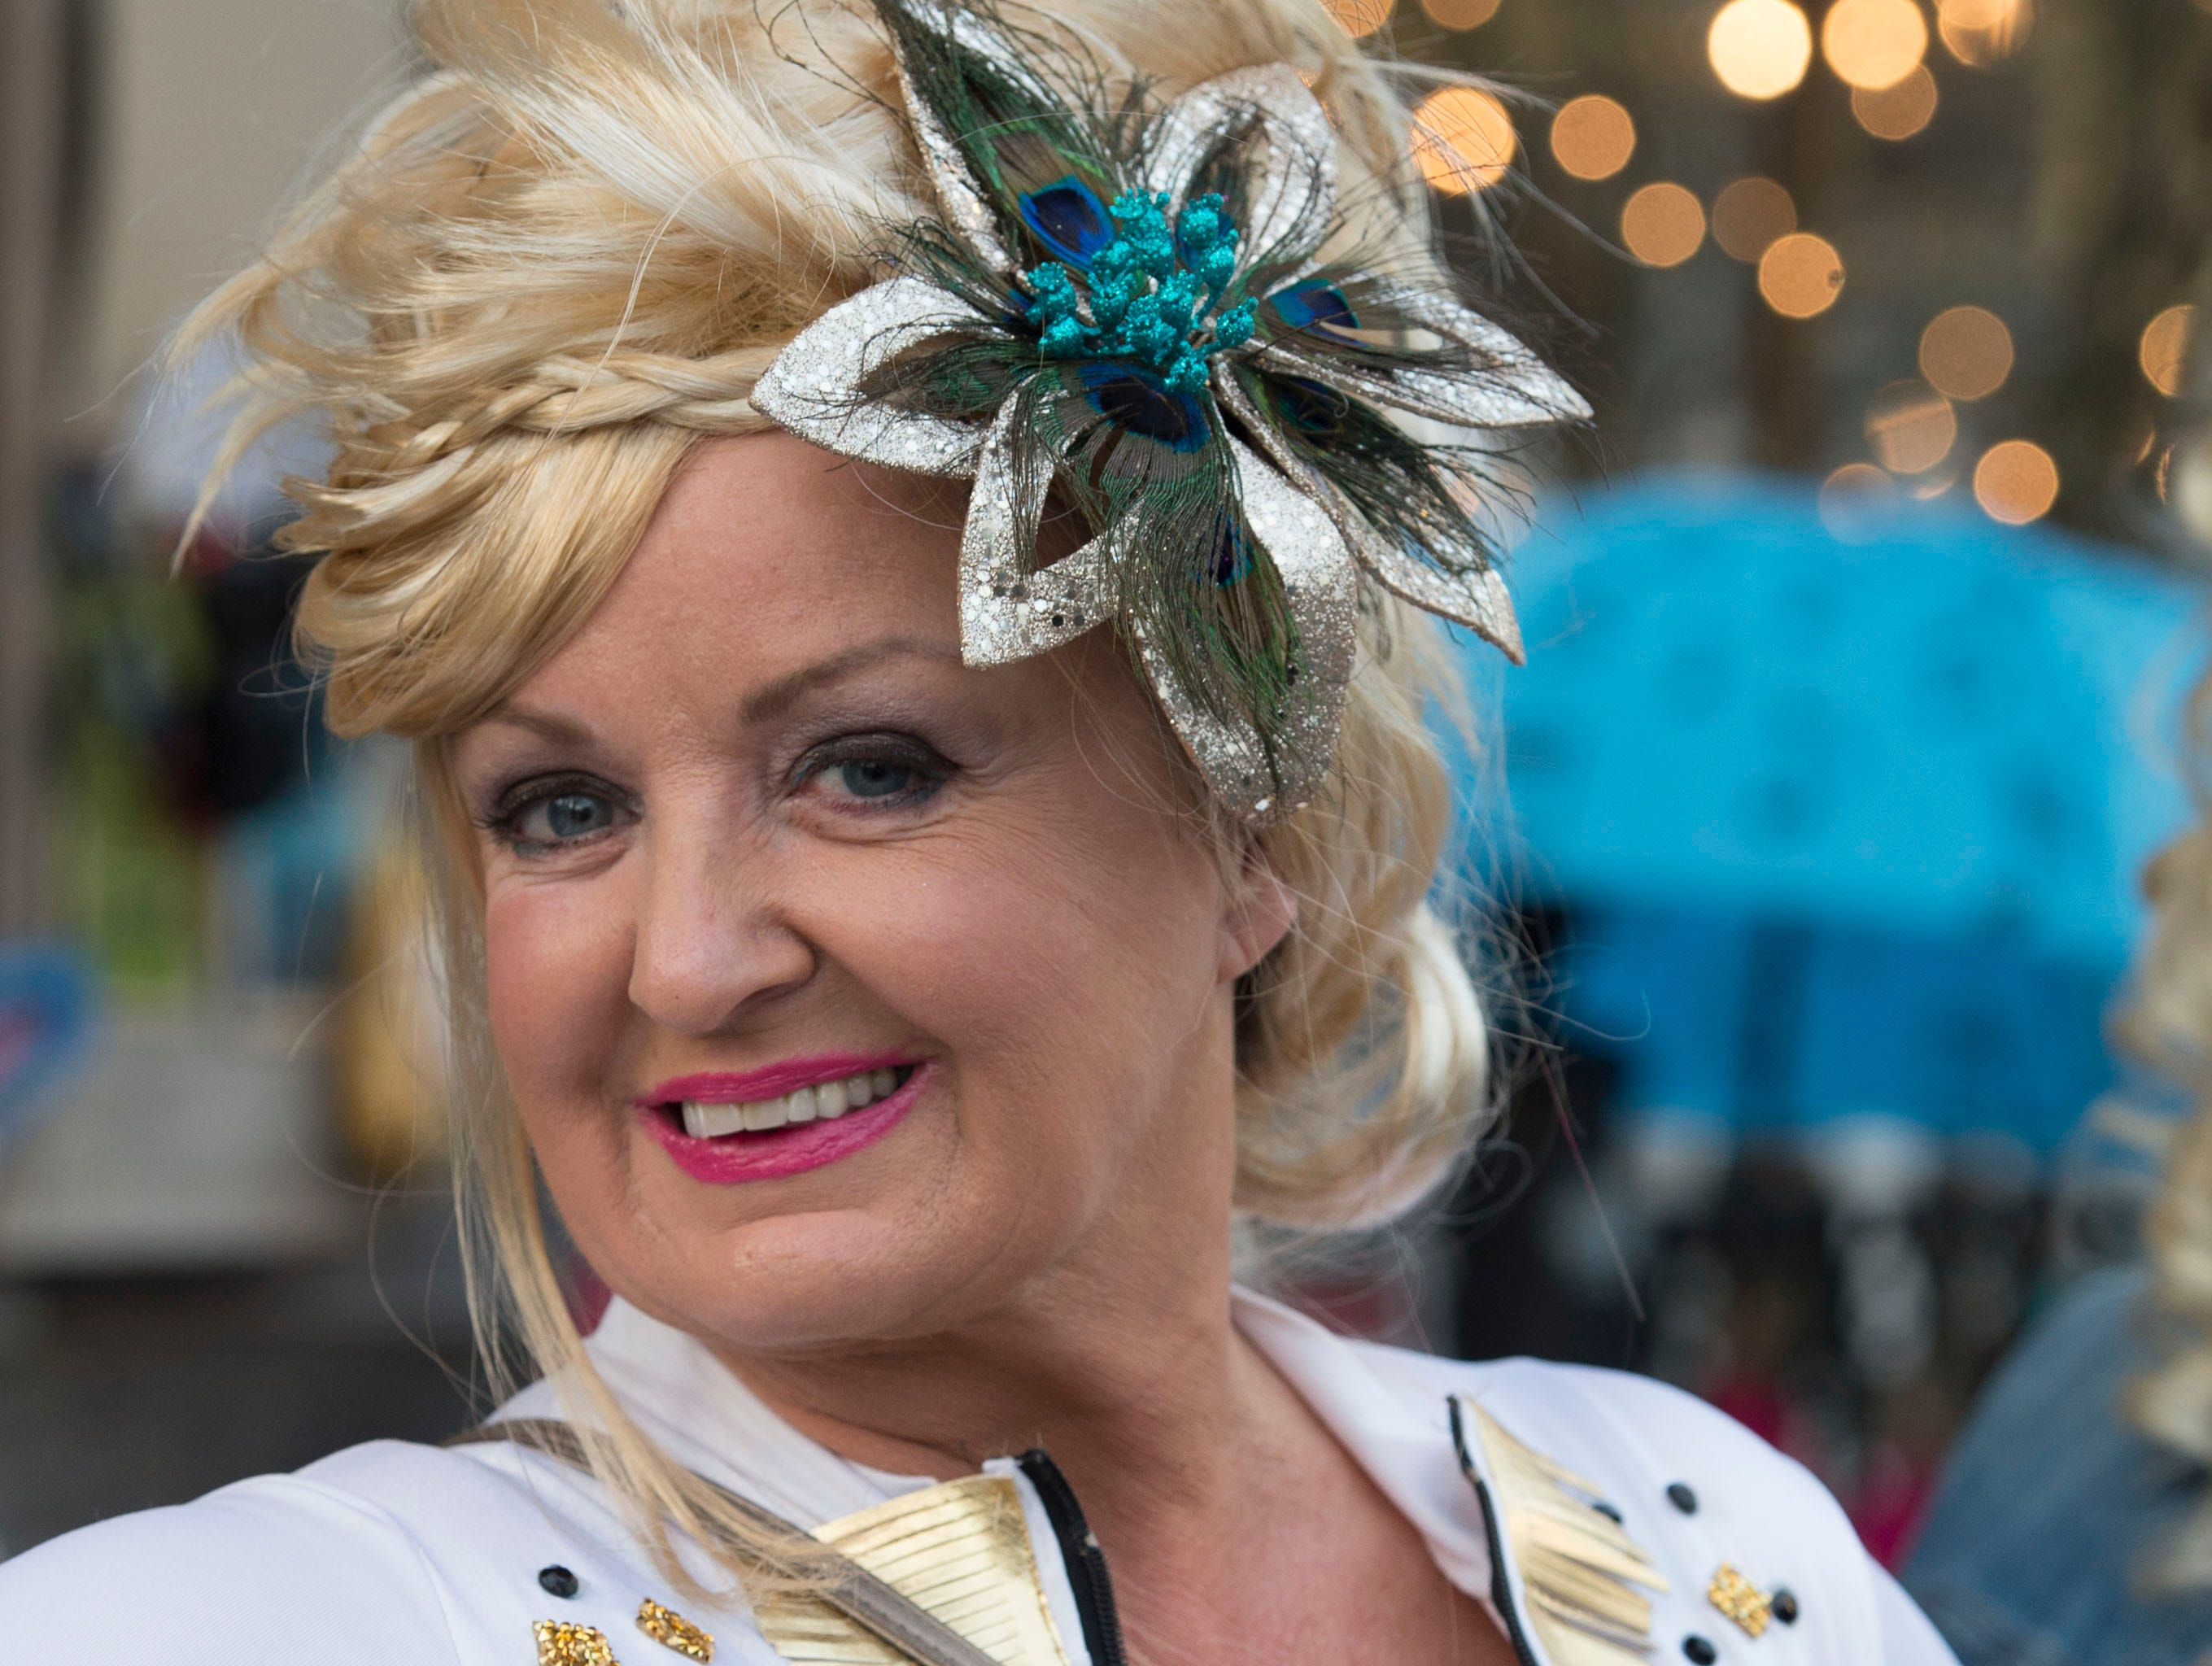 An attendee of the 4th annual Dolly Should festival poses before the Dolly Parton look-a-like contest held on the porch of the Mockingbird Cafe. Saturday, Jan. 12, 2019.